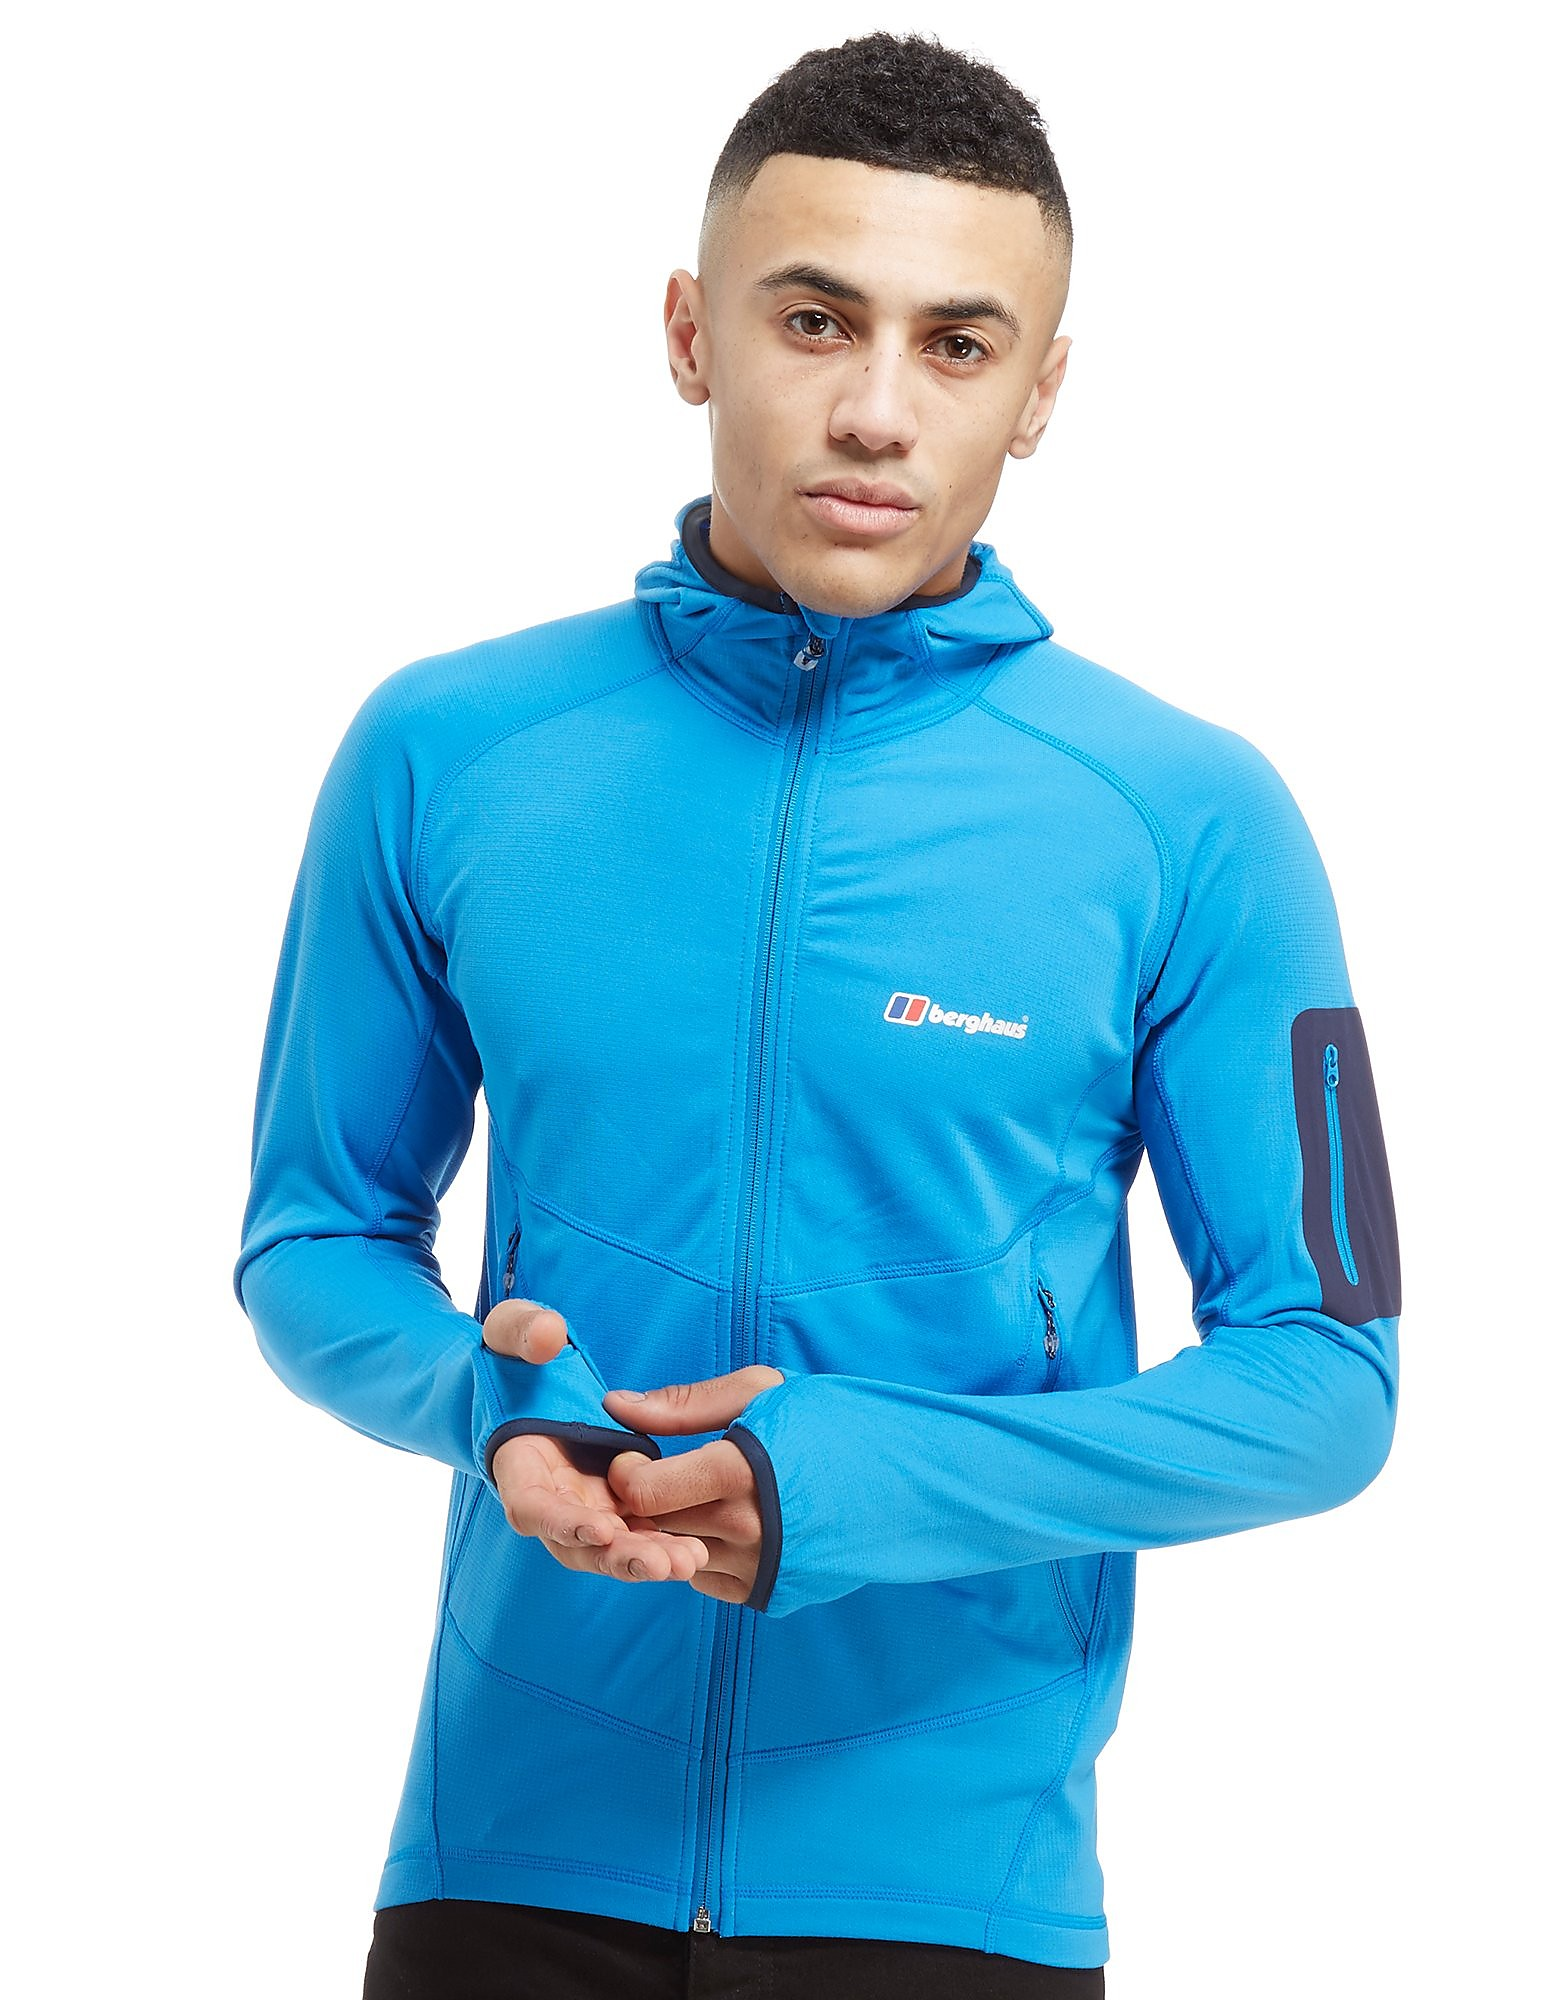 Berghaus Pravitale Lightweight Full Zip Jacket